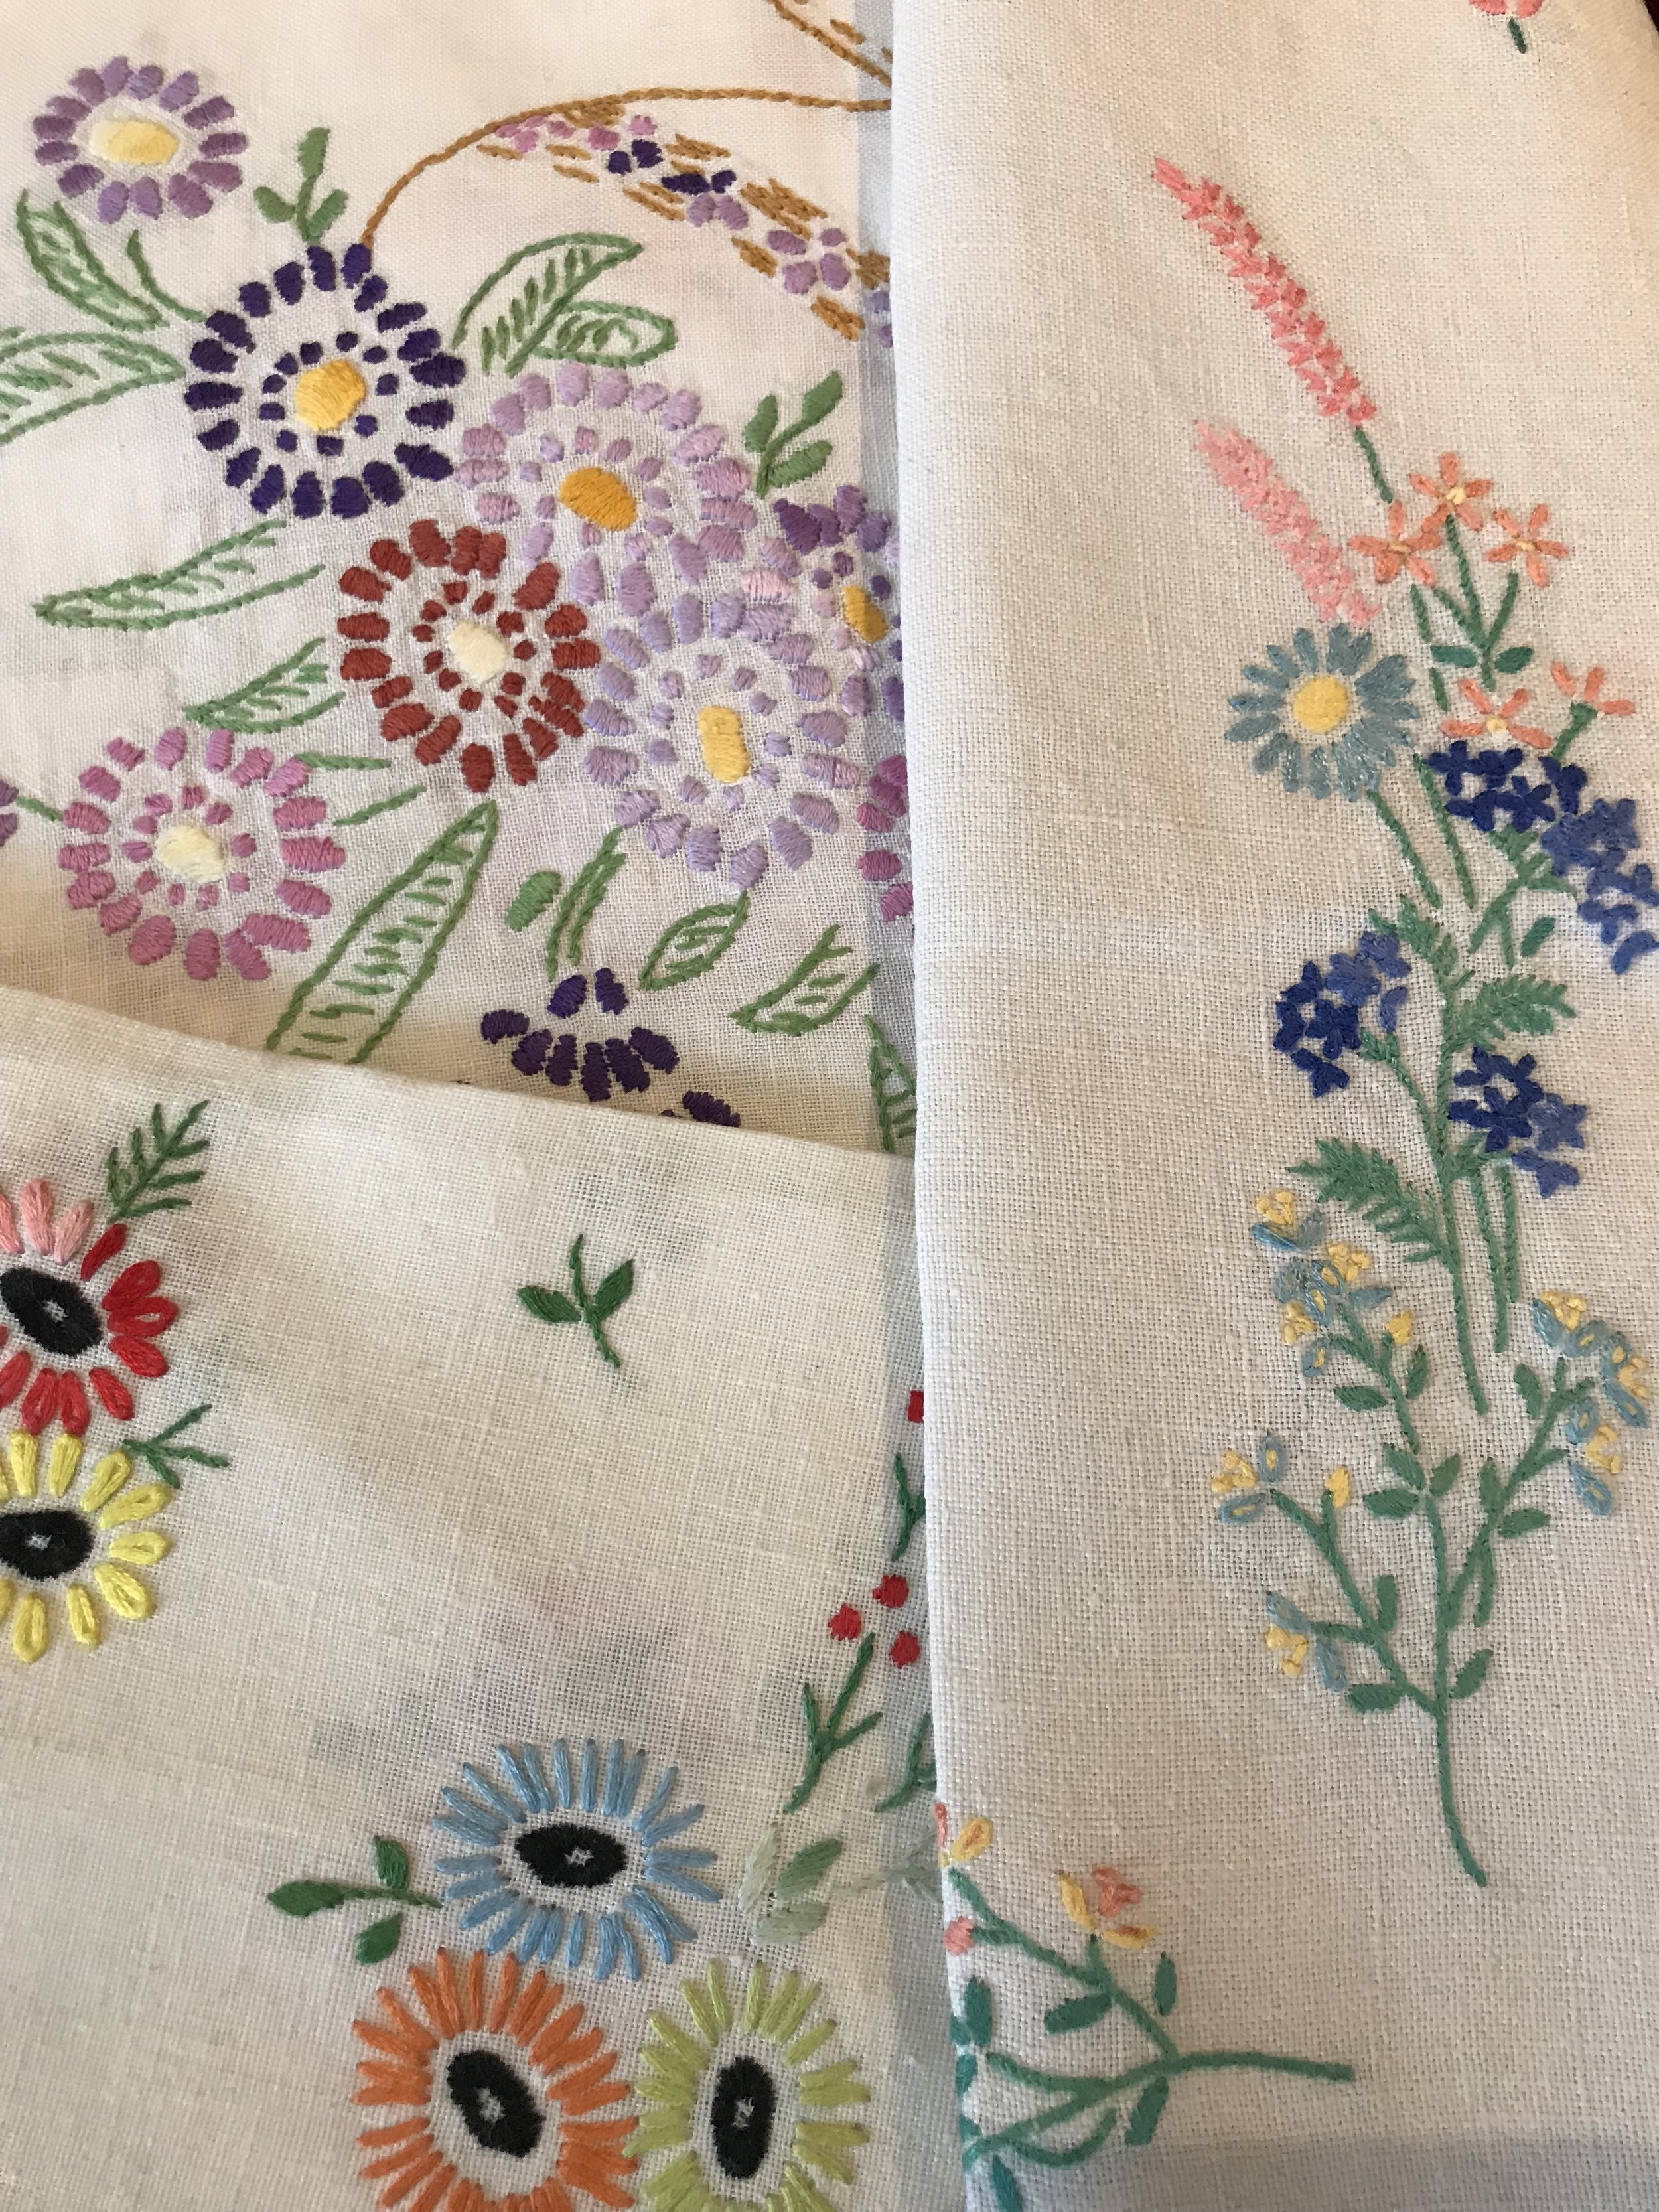 Just some of my large collection of vintage table cloths.